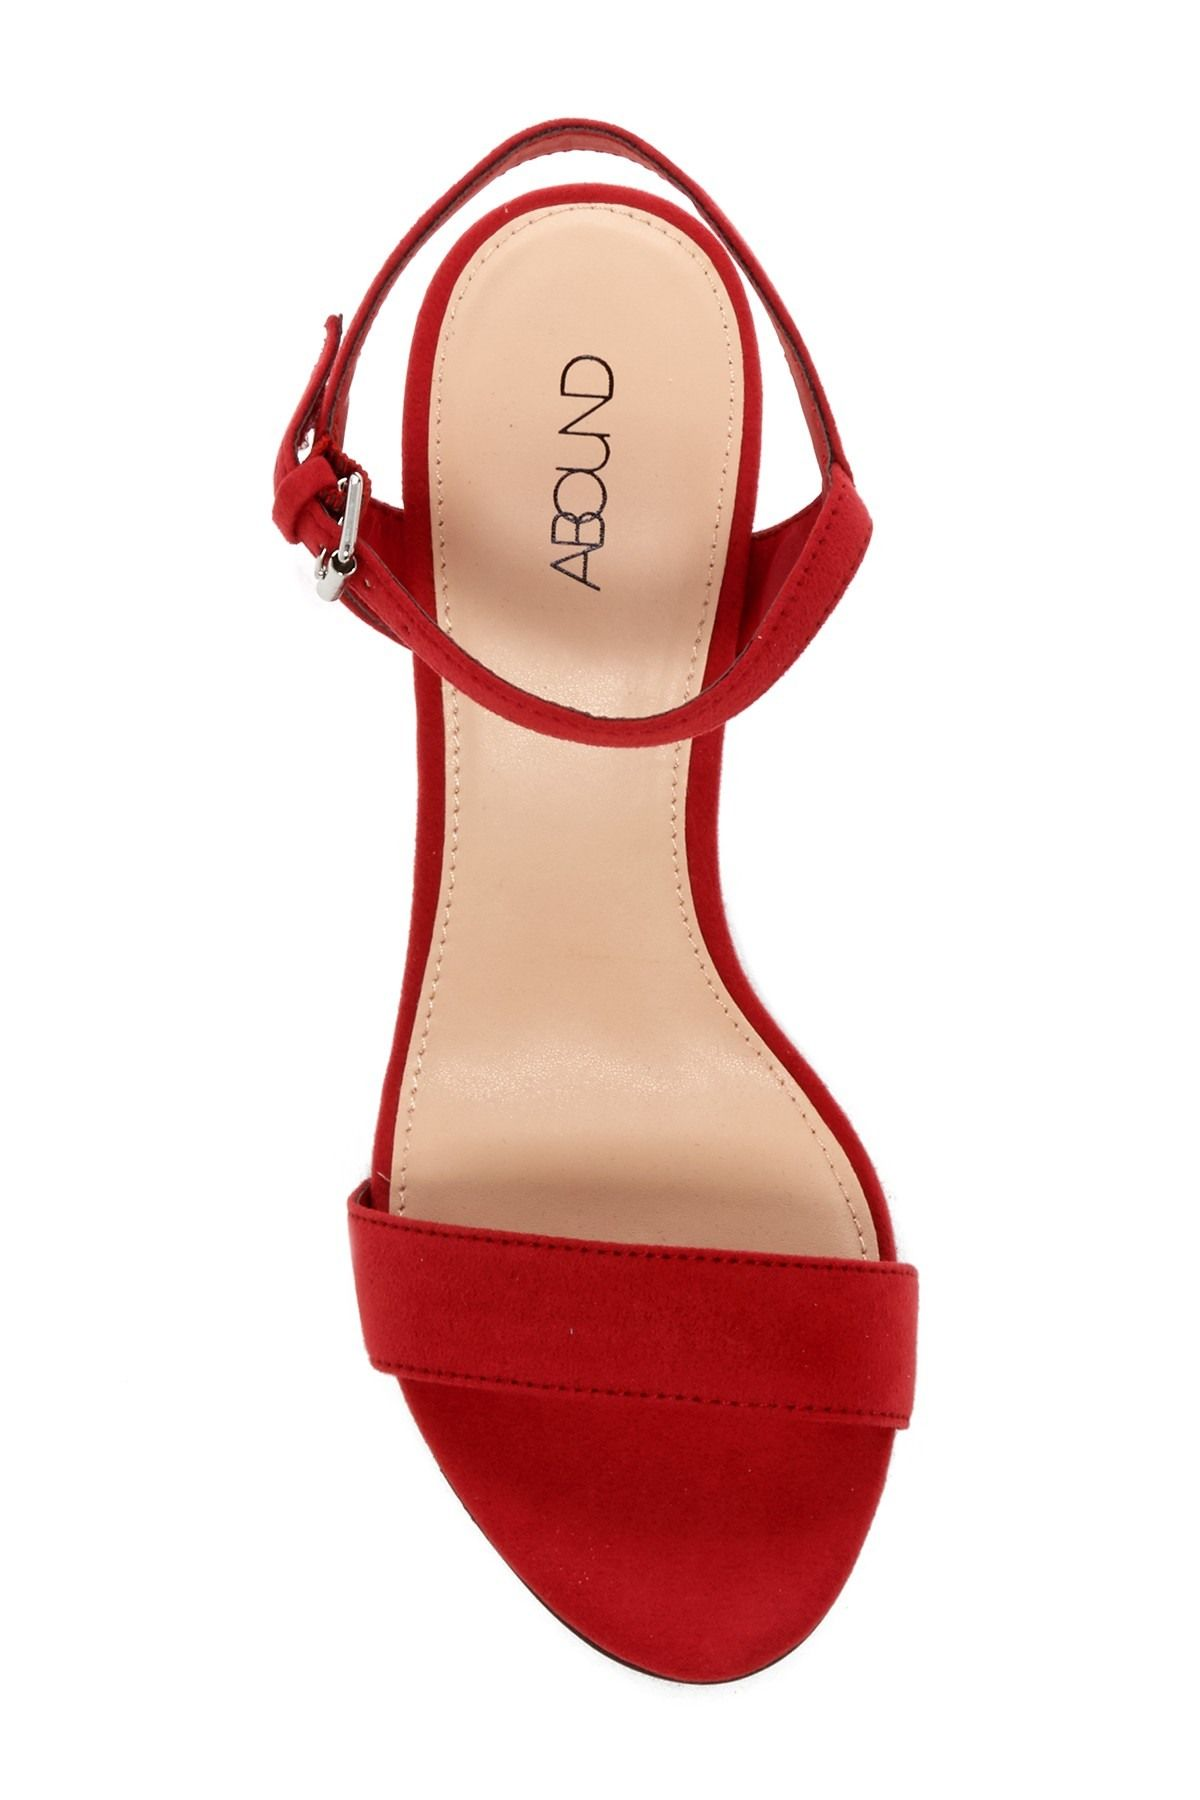 baf5e2d1d6c Abound - Steph Faux Suede Block Heel Sandal. Free Shipping on orders over   100.